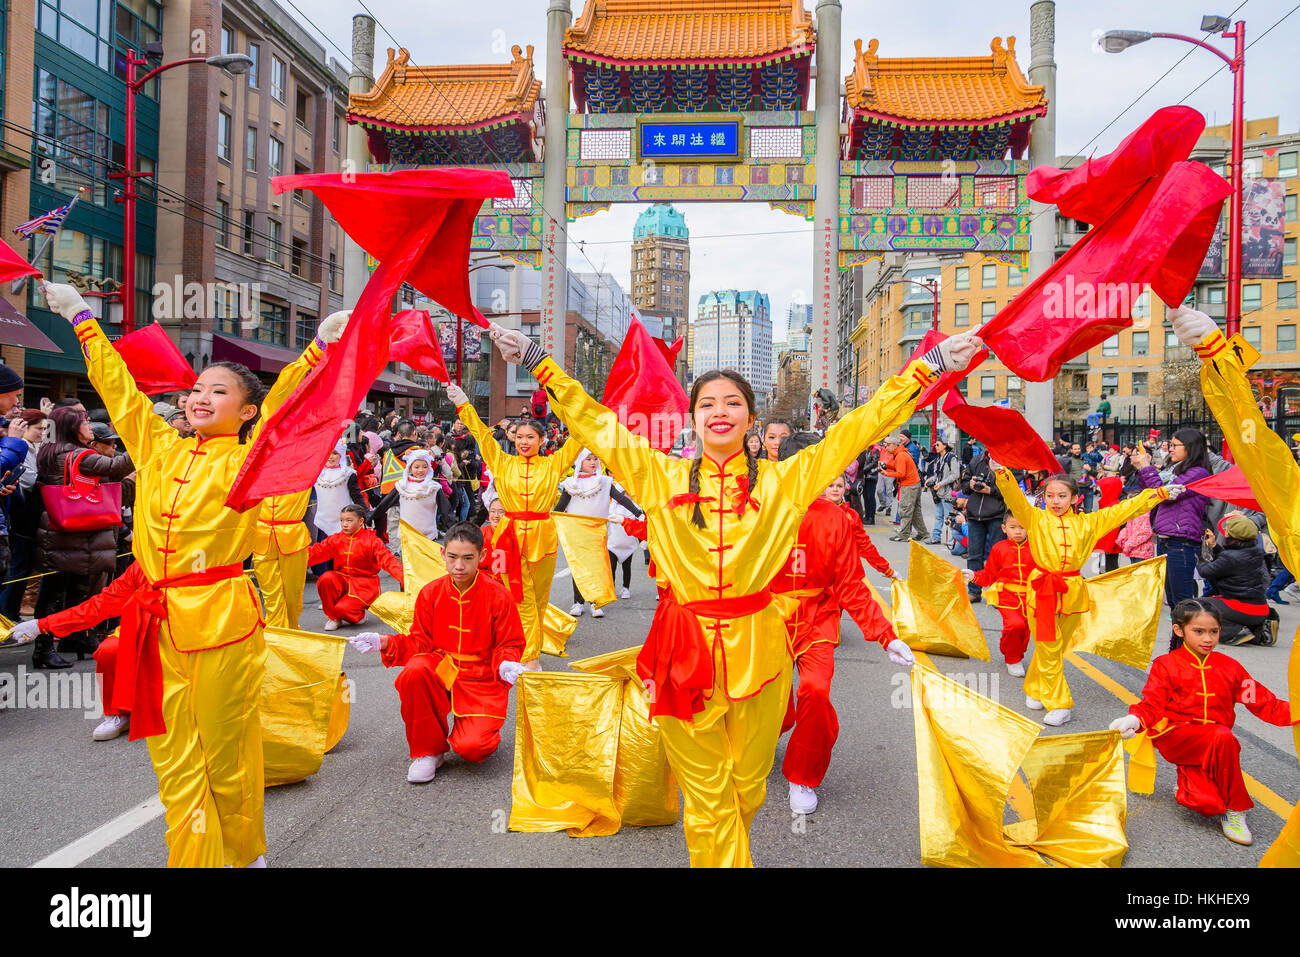 Chinese New Year Parade, Vancouver, British Columbia, Canada - Stock Image